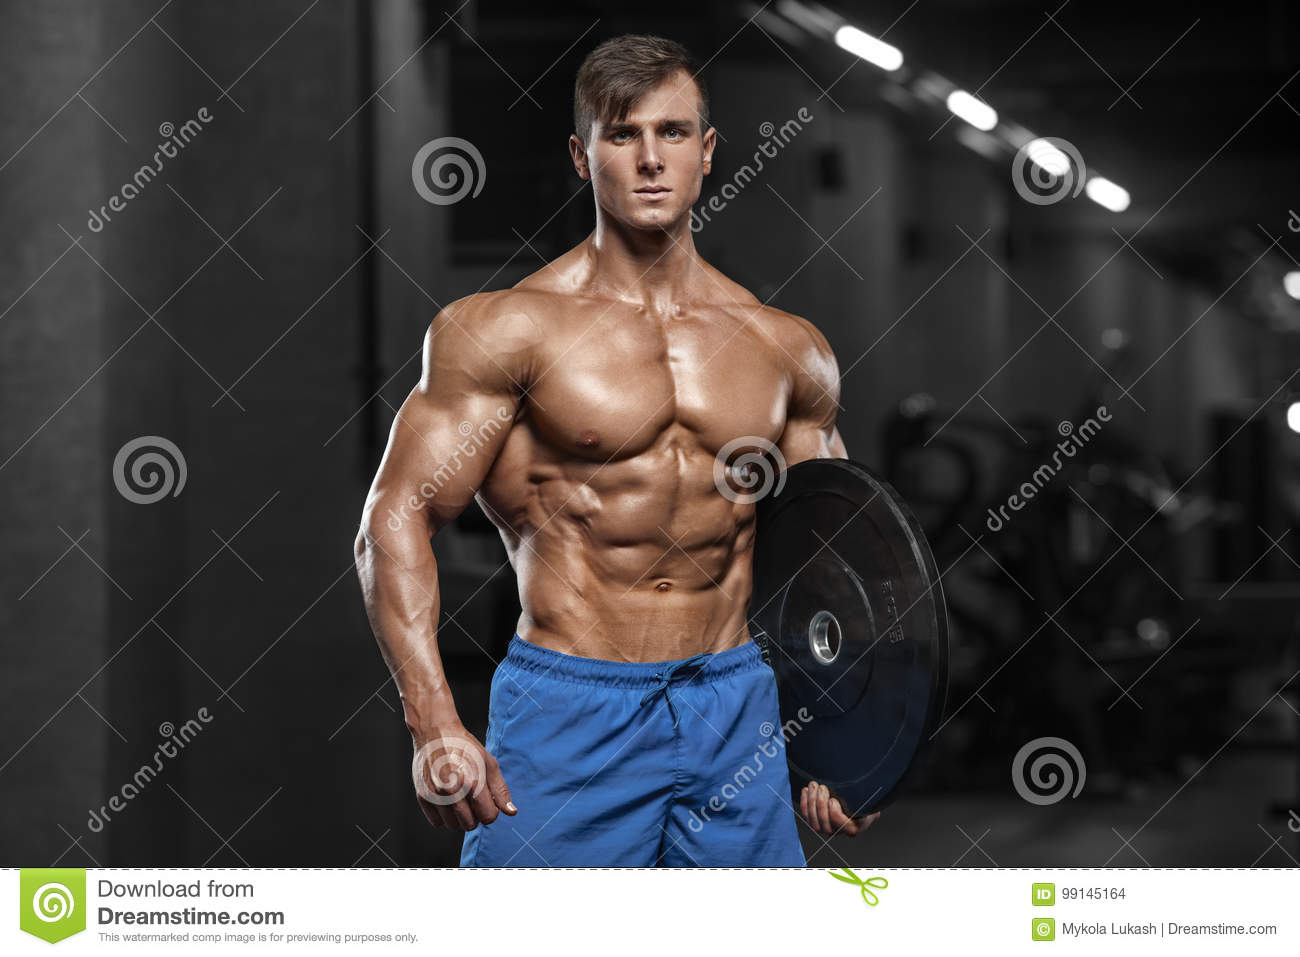 Muscular man showing muscles, posing in gym. Strong male naked torso abs,  working out.